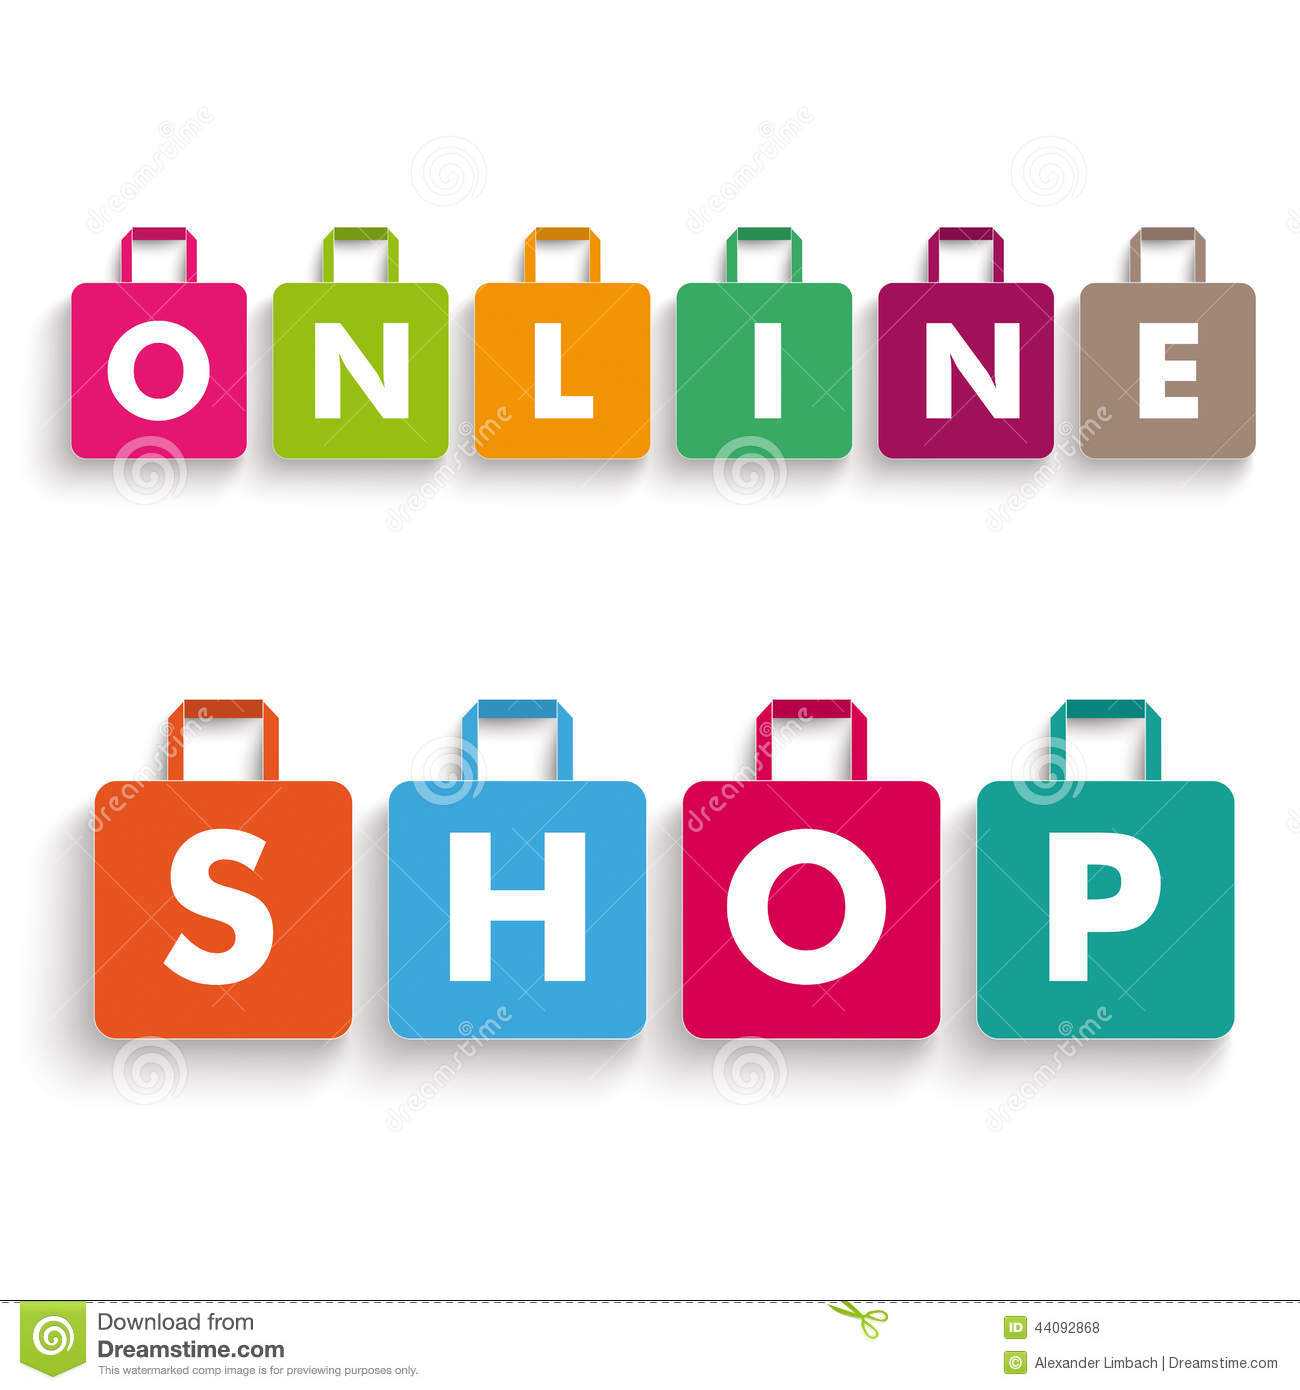 colored-paper-shopping-bags-online-shop-text-white-background-44092868.jpg